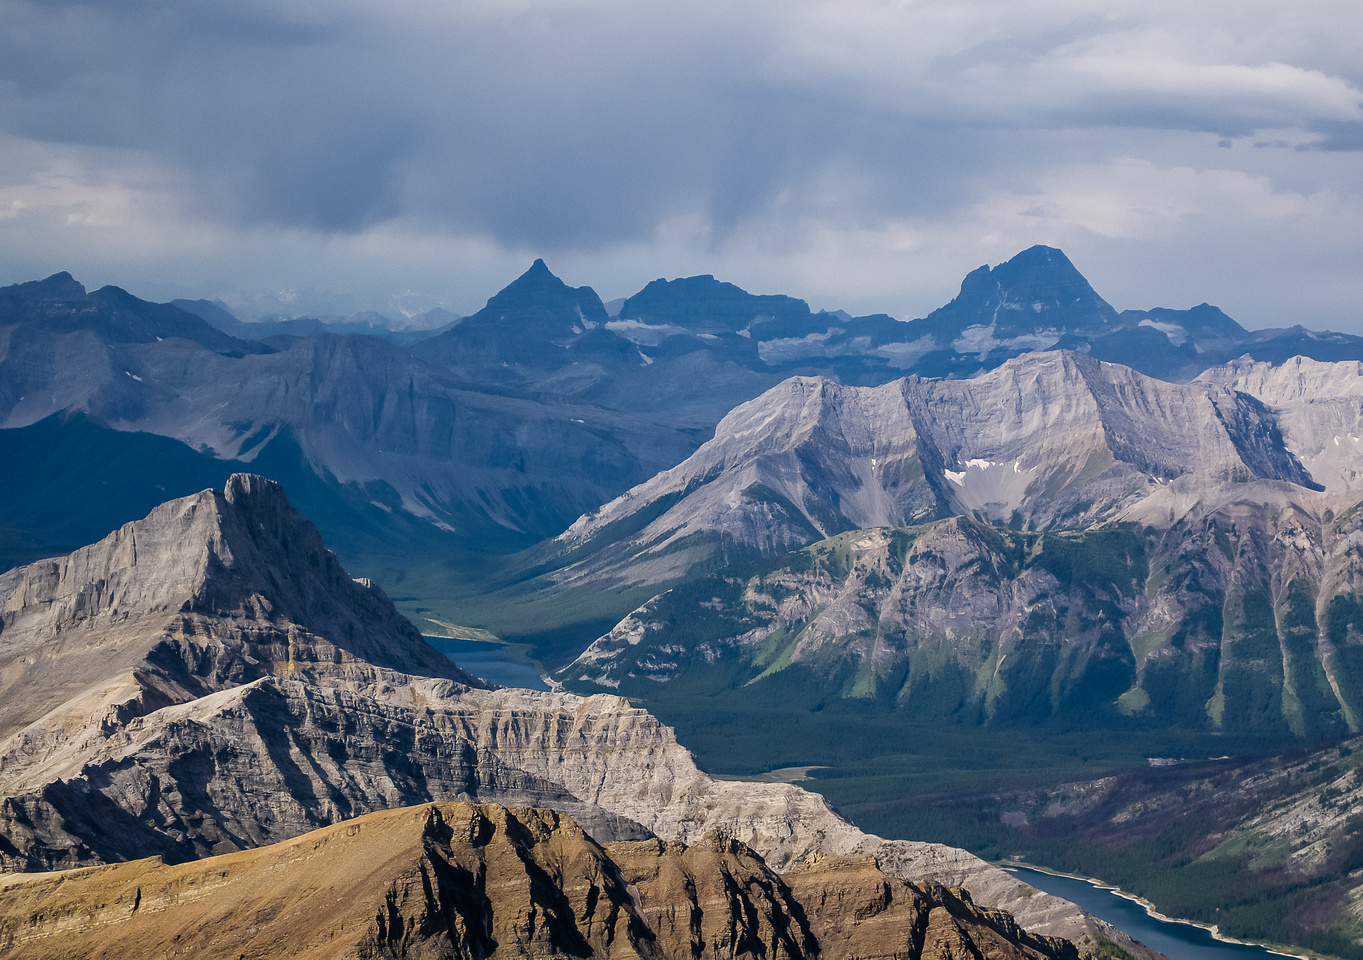 Great views of Aye, Eon and Assiniboine over Cone Mountain.